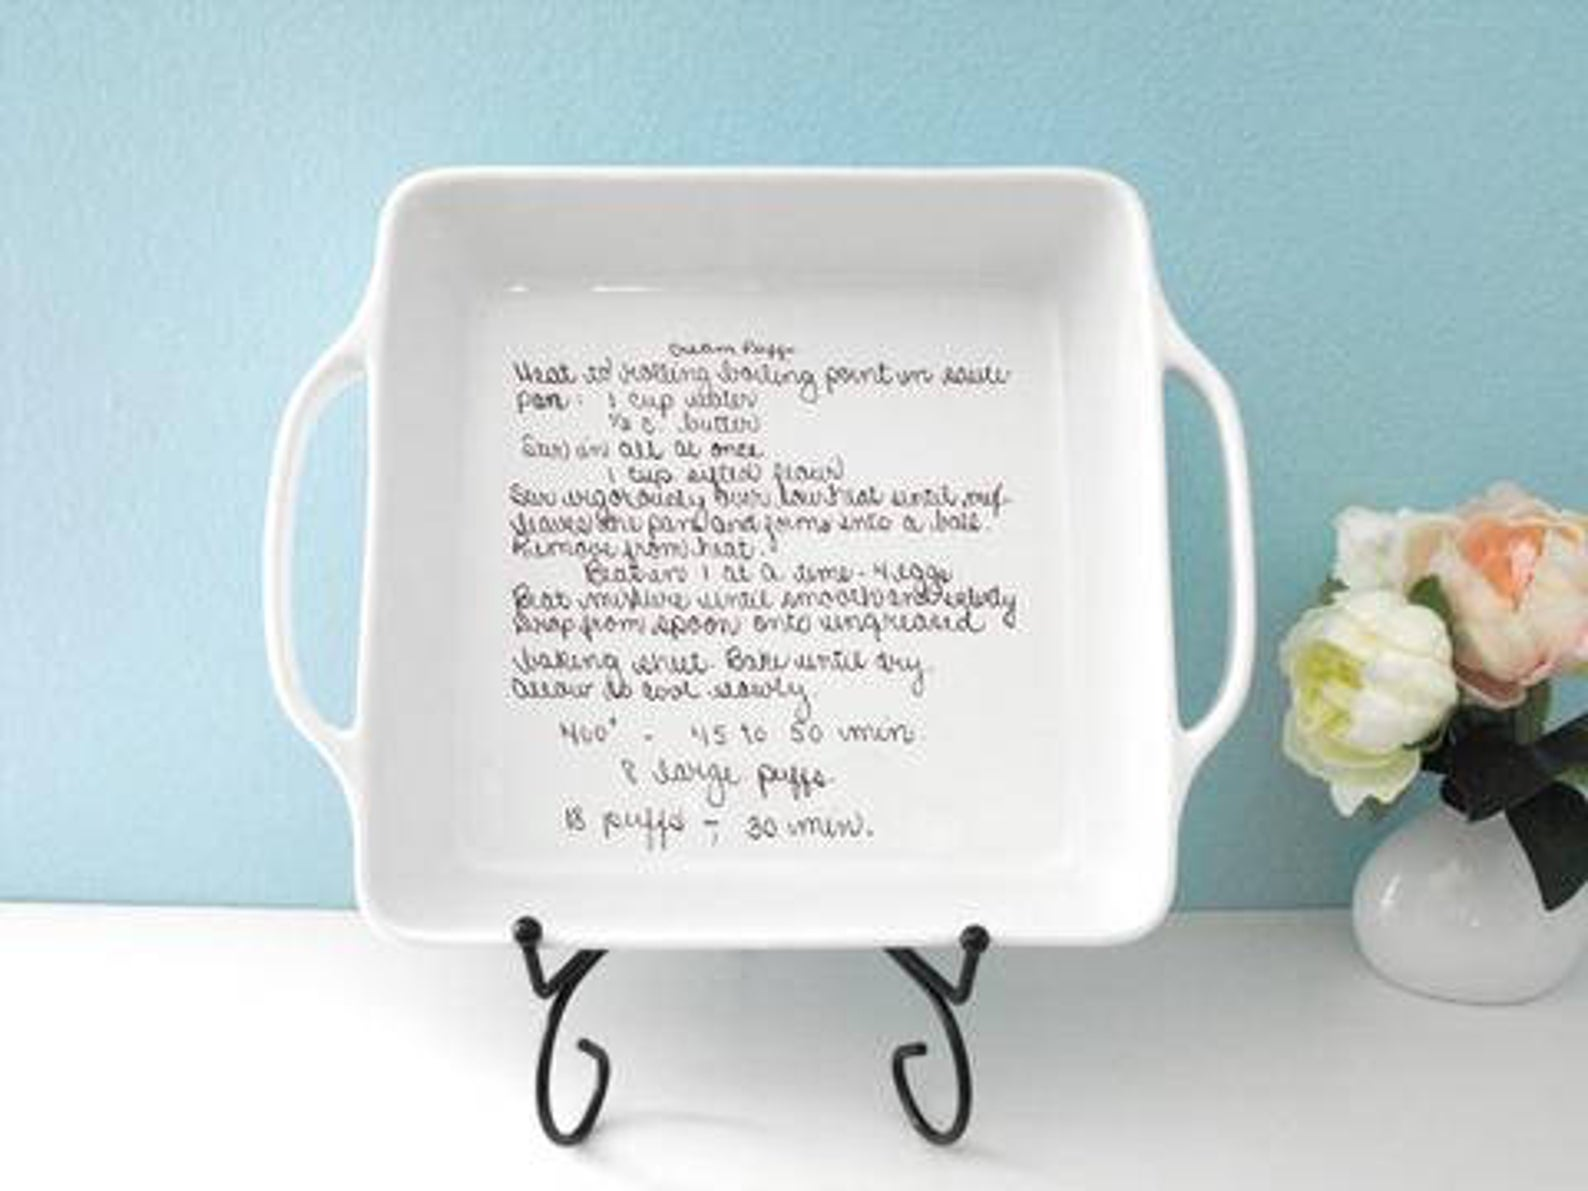 Square Casserole Baking Dish Customized with Handwritten Recipe